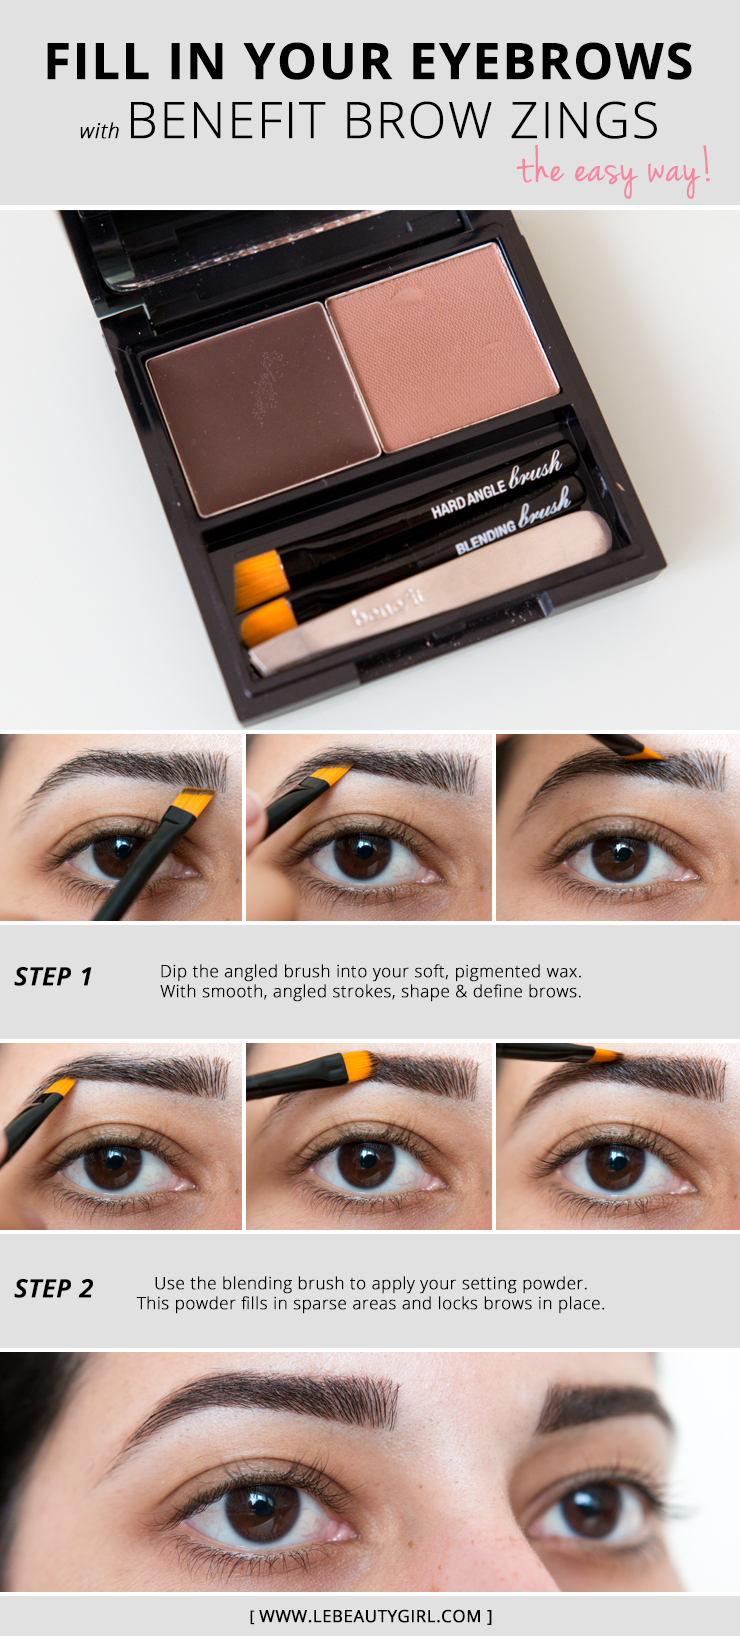 How To Fill In Eyebrows With Benefit Brow Zings Beauty Girl